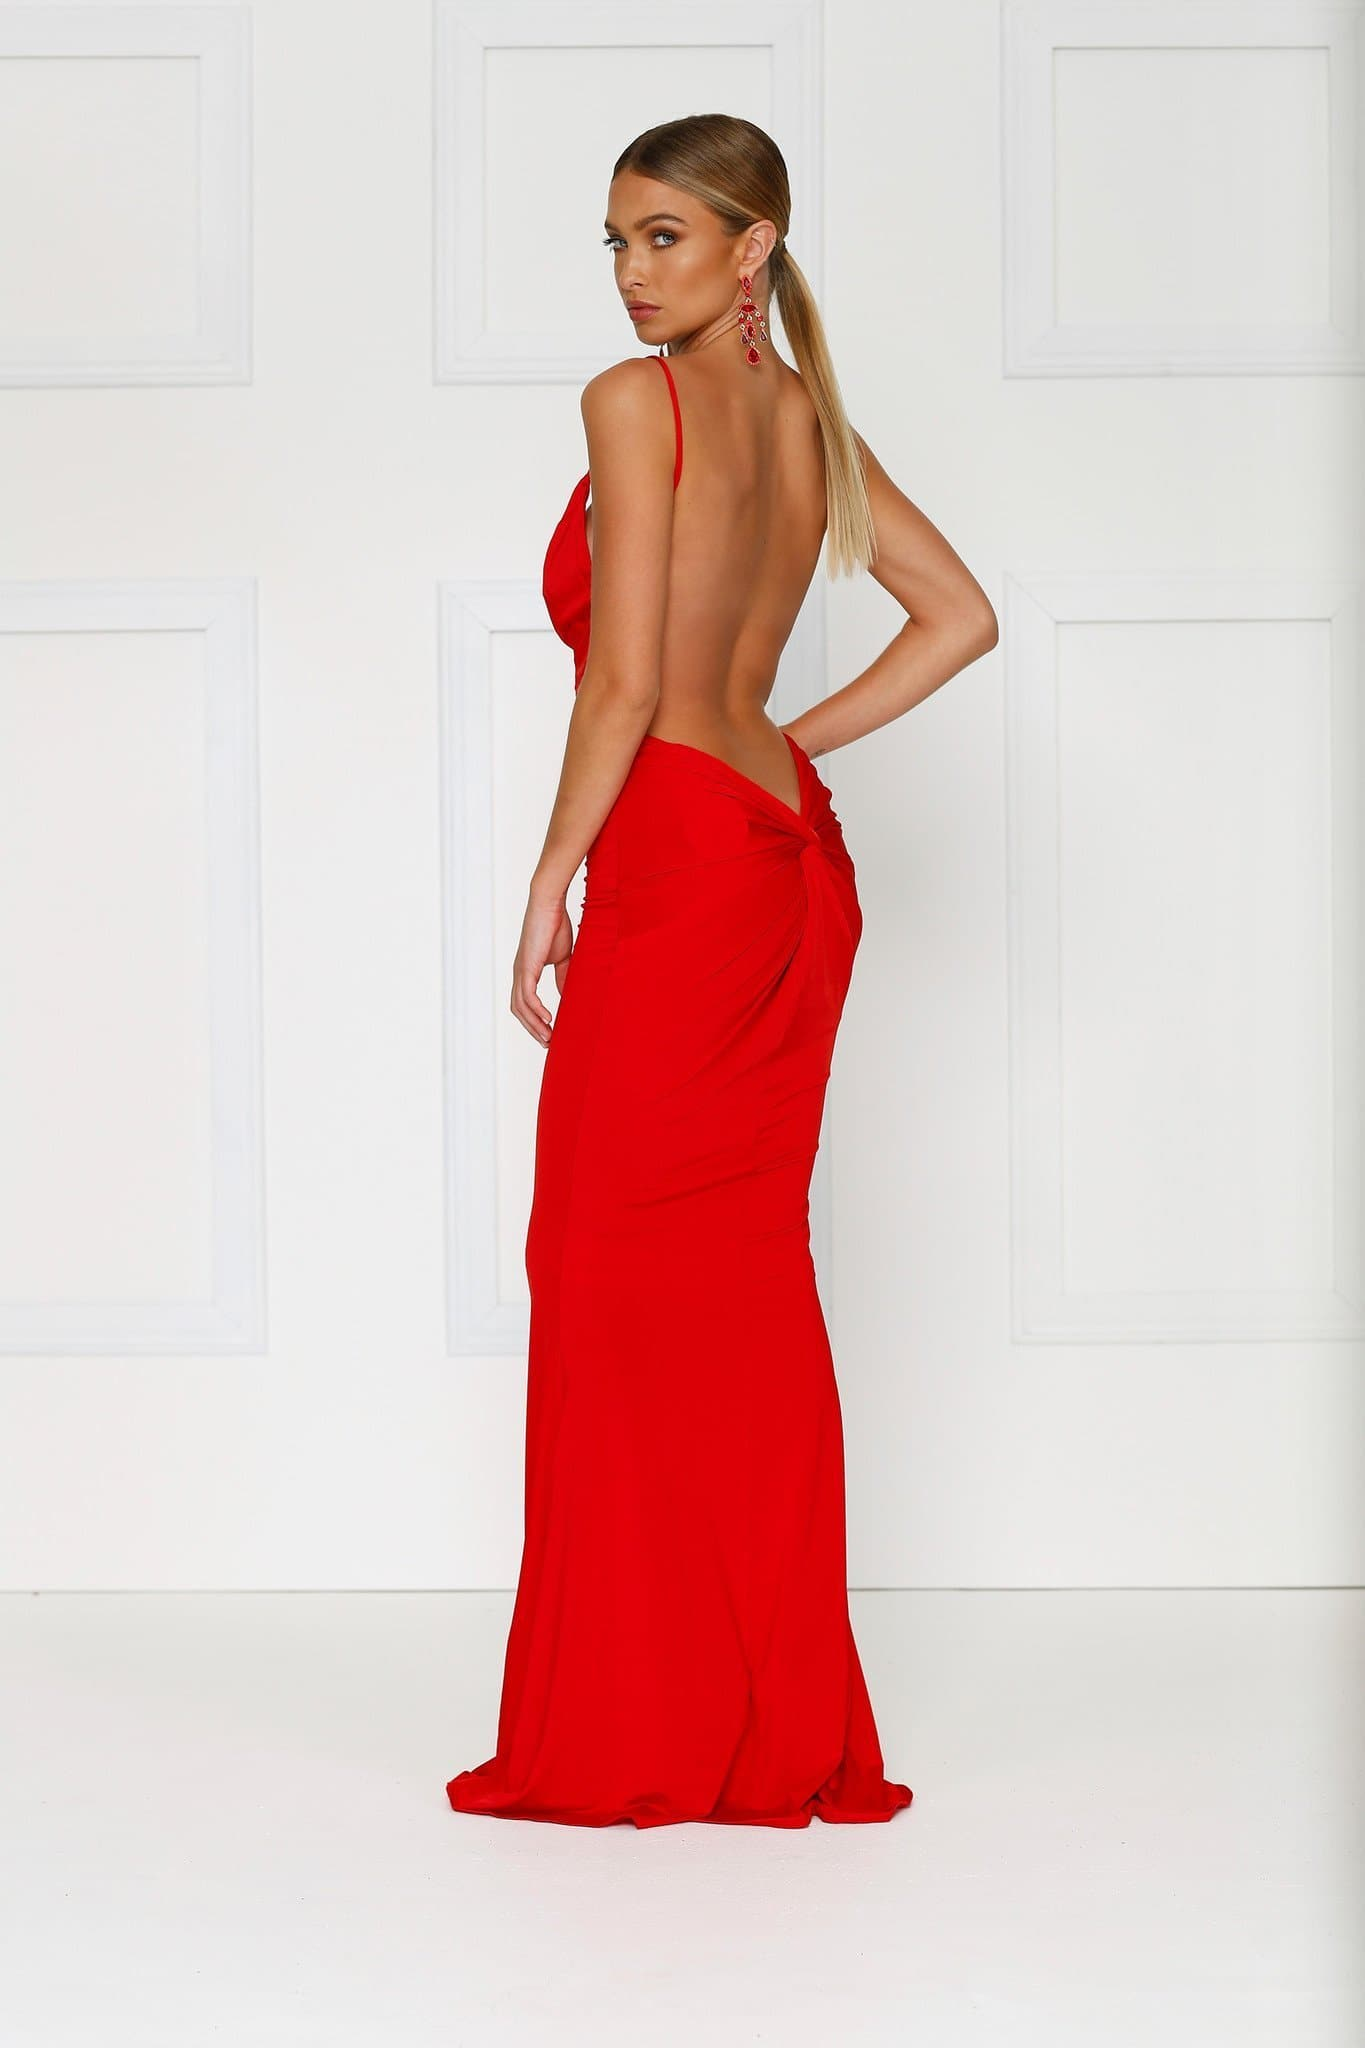 Penelope Luxe - Bright Red Backless Dress with Back Knot Design